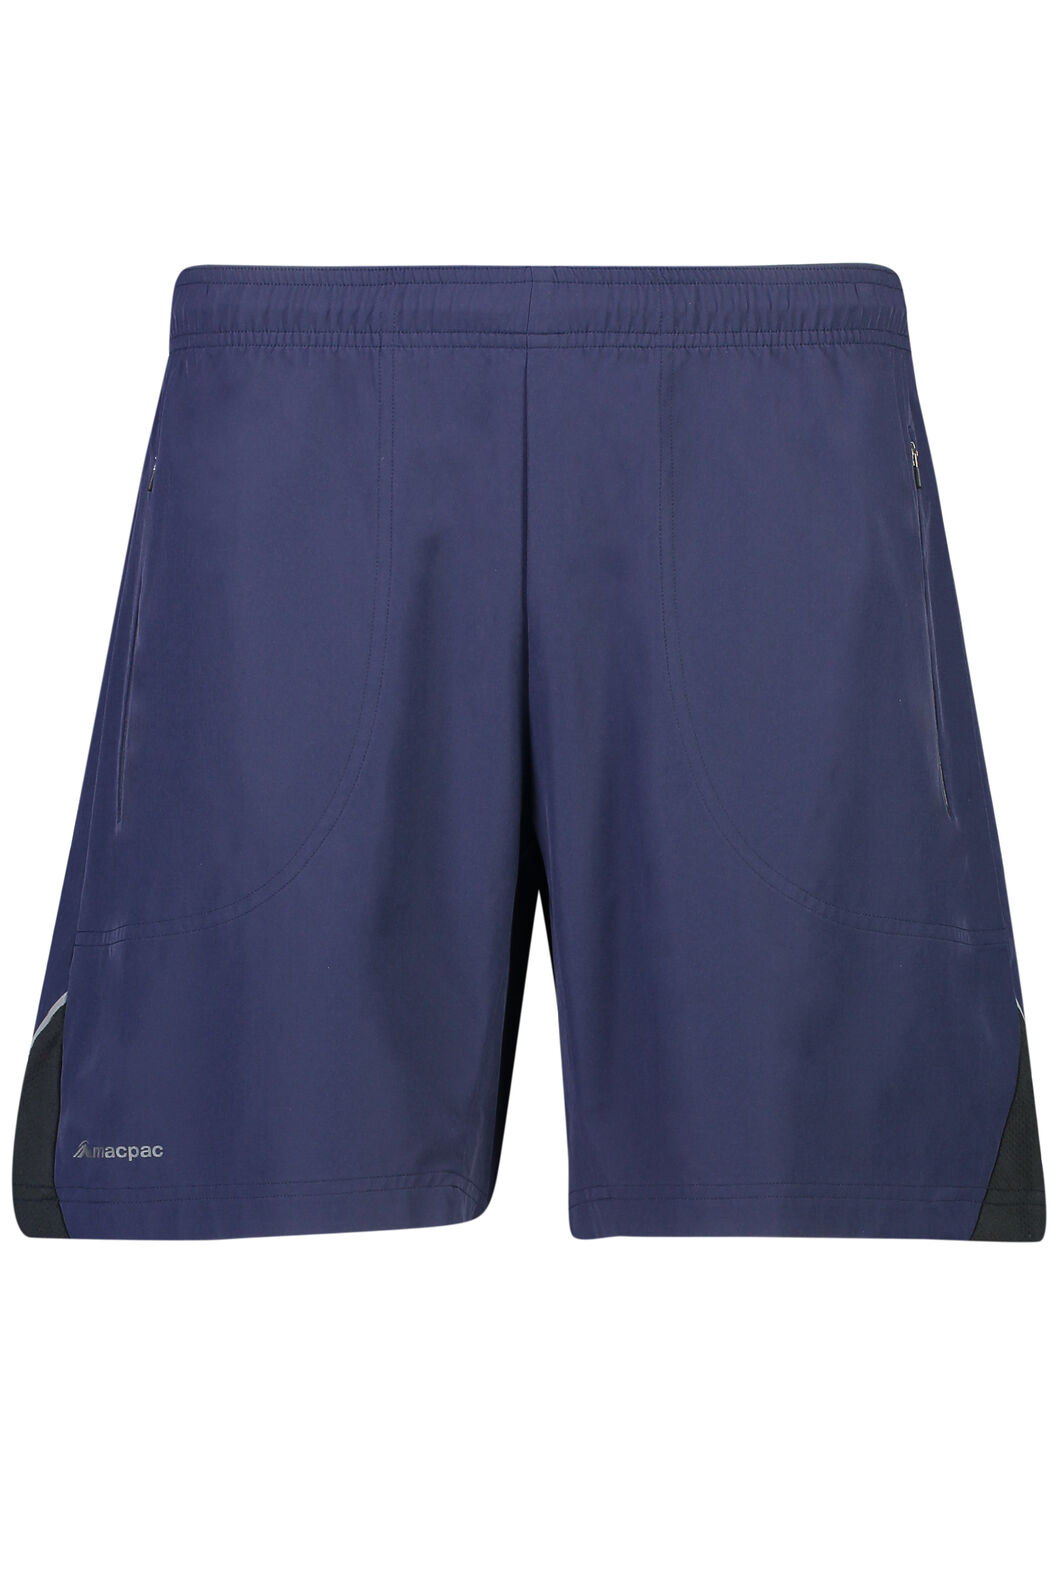 Macpac Fast Track Shorts - Men's, Black Iris, hi-res